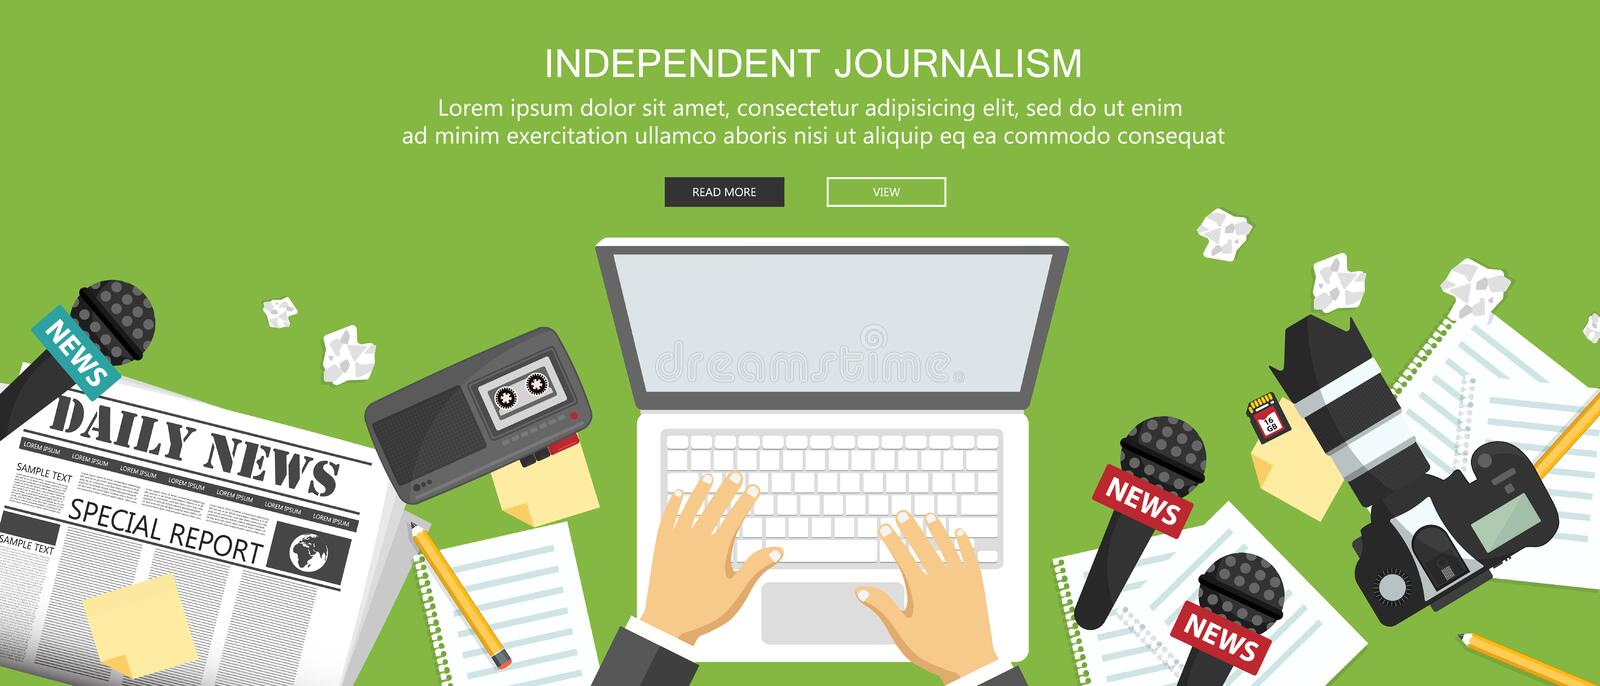 Independent journalism flat banner. Equipment for journalist on desk. Flat vector. Illustrationn stock illustration